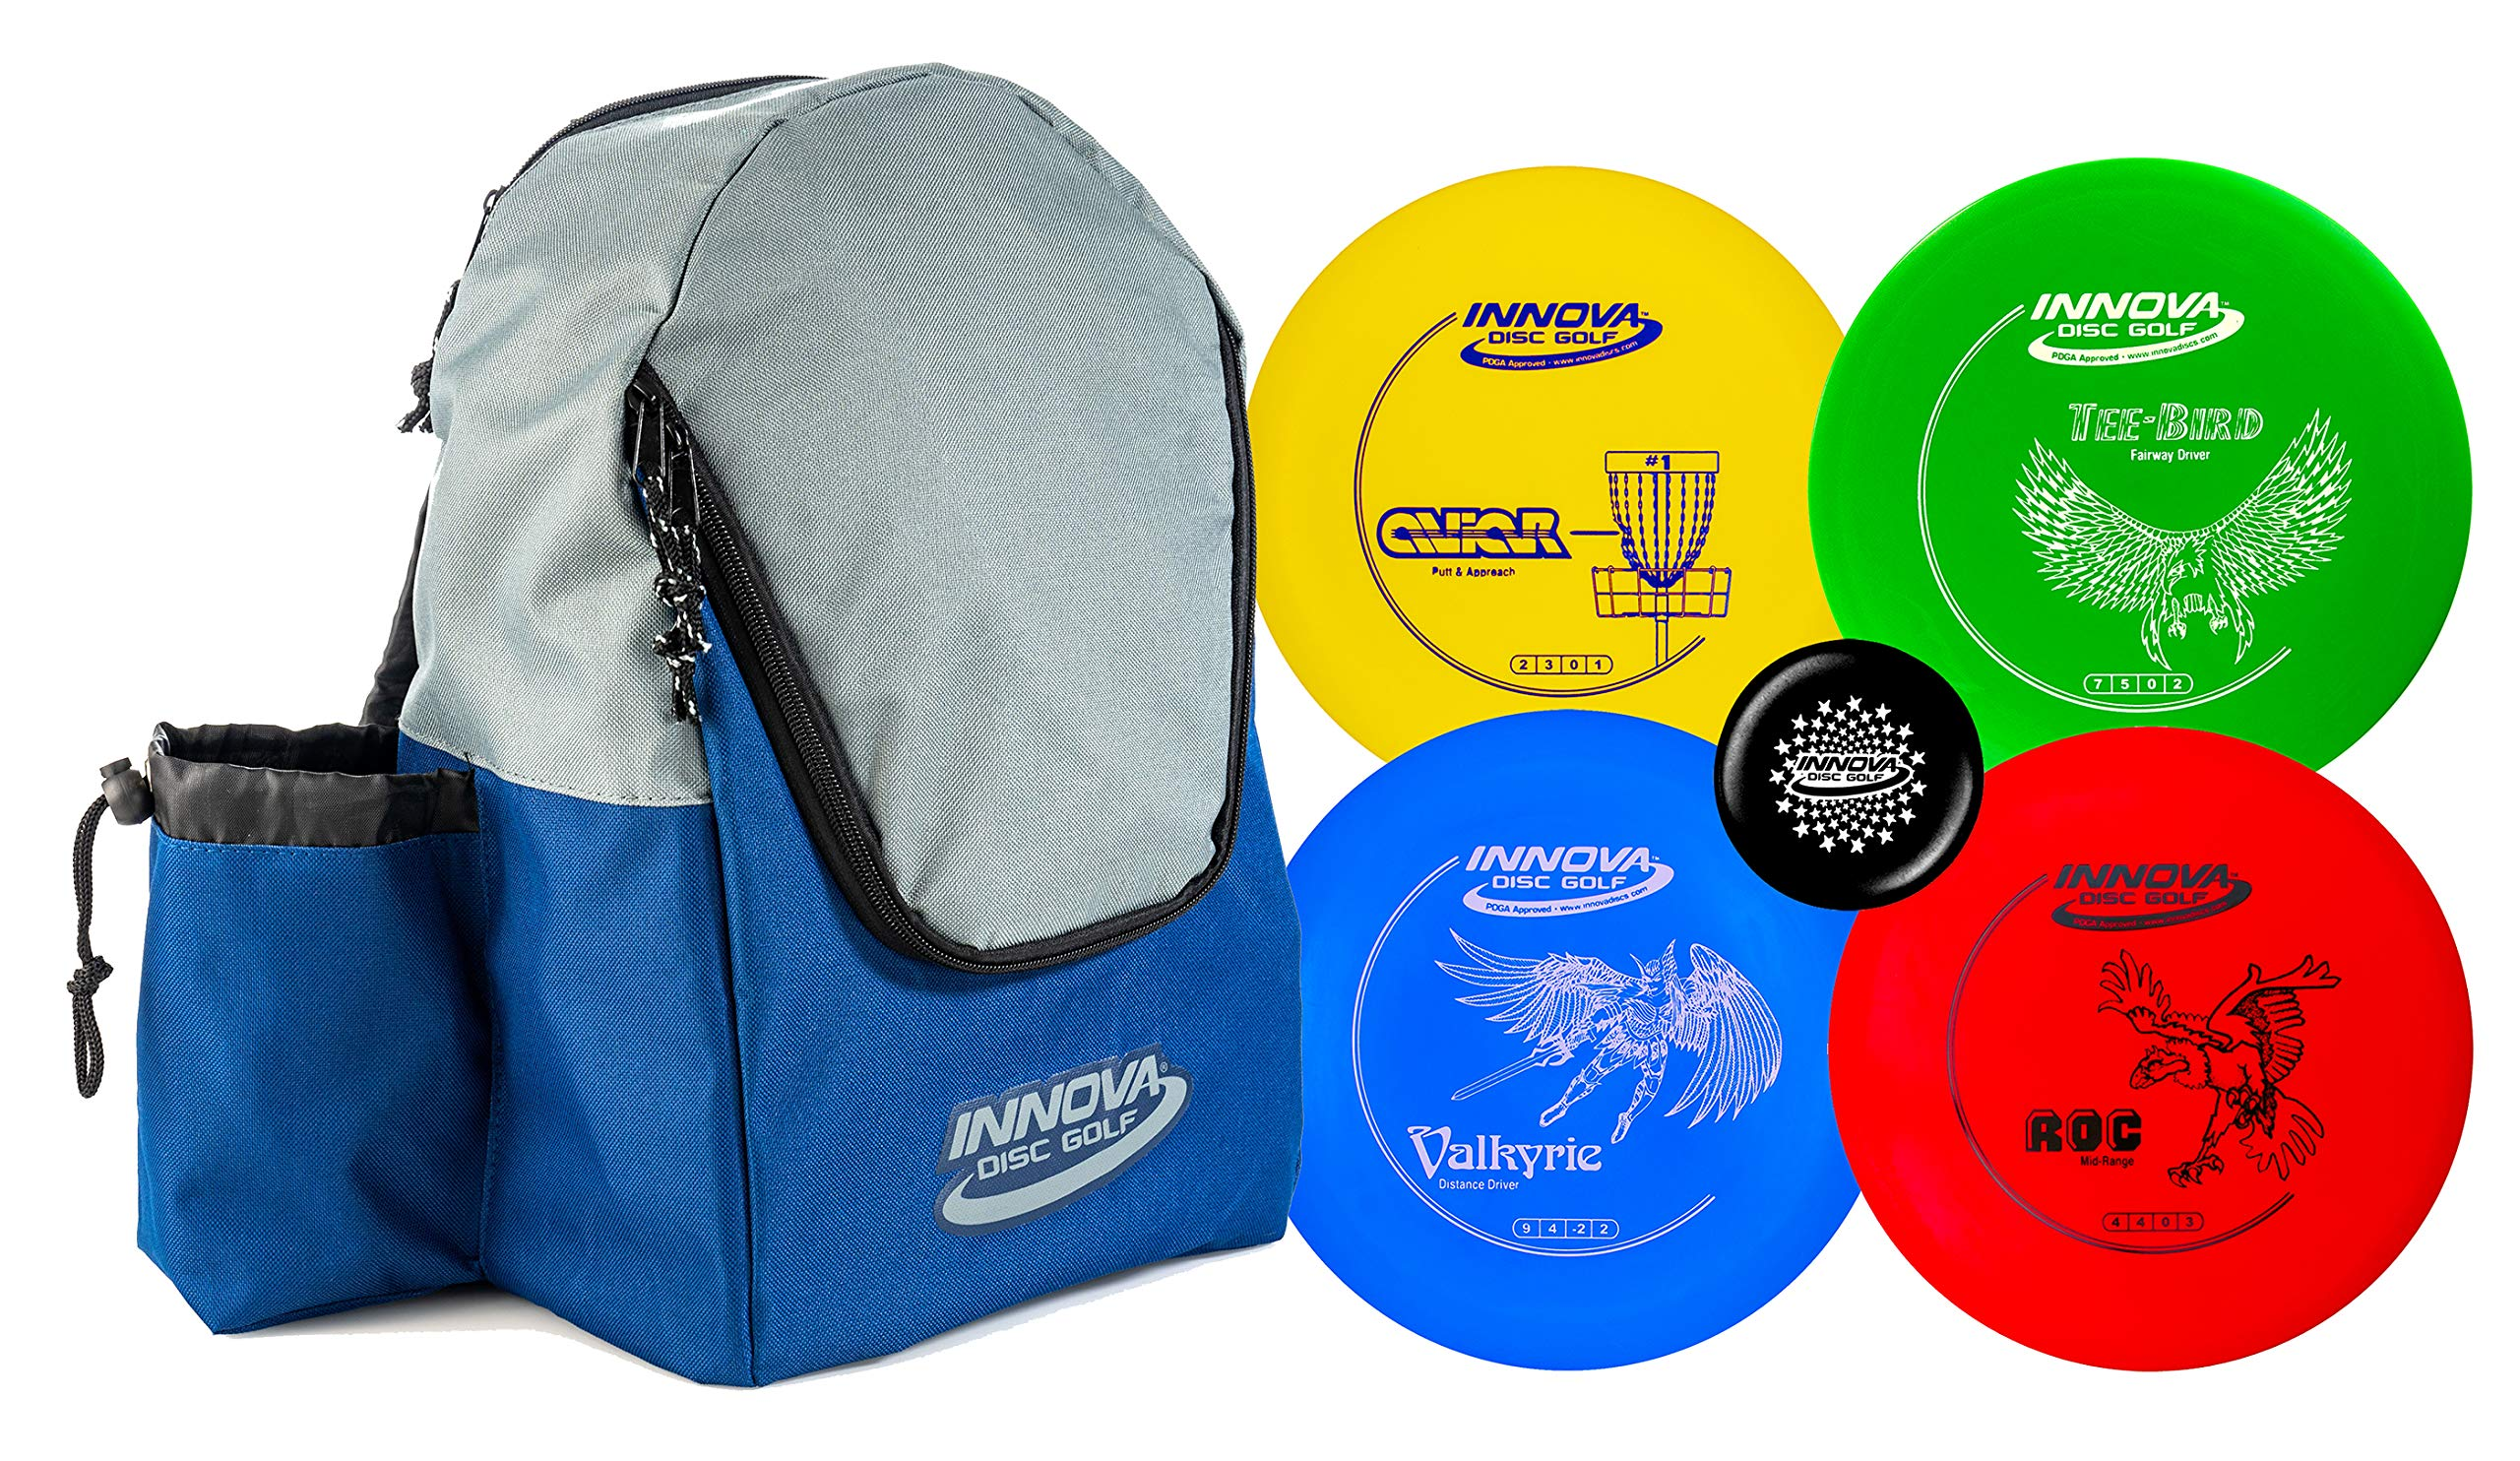 Innova Discs Golf Set with 4 Discs and Discover Disc Golf Backpack - DX Distance Driver, Fairway Driver, Mid-Range, Putter and Mini Marker Disc (Blue/Gray) by Innova Discs